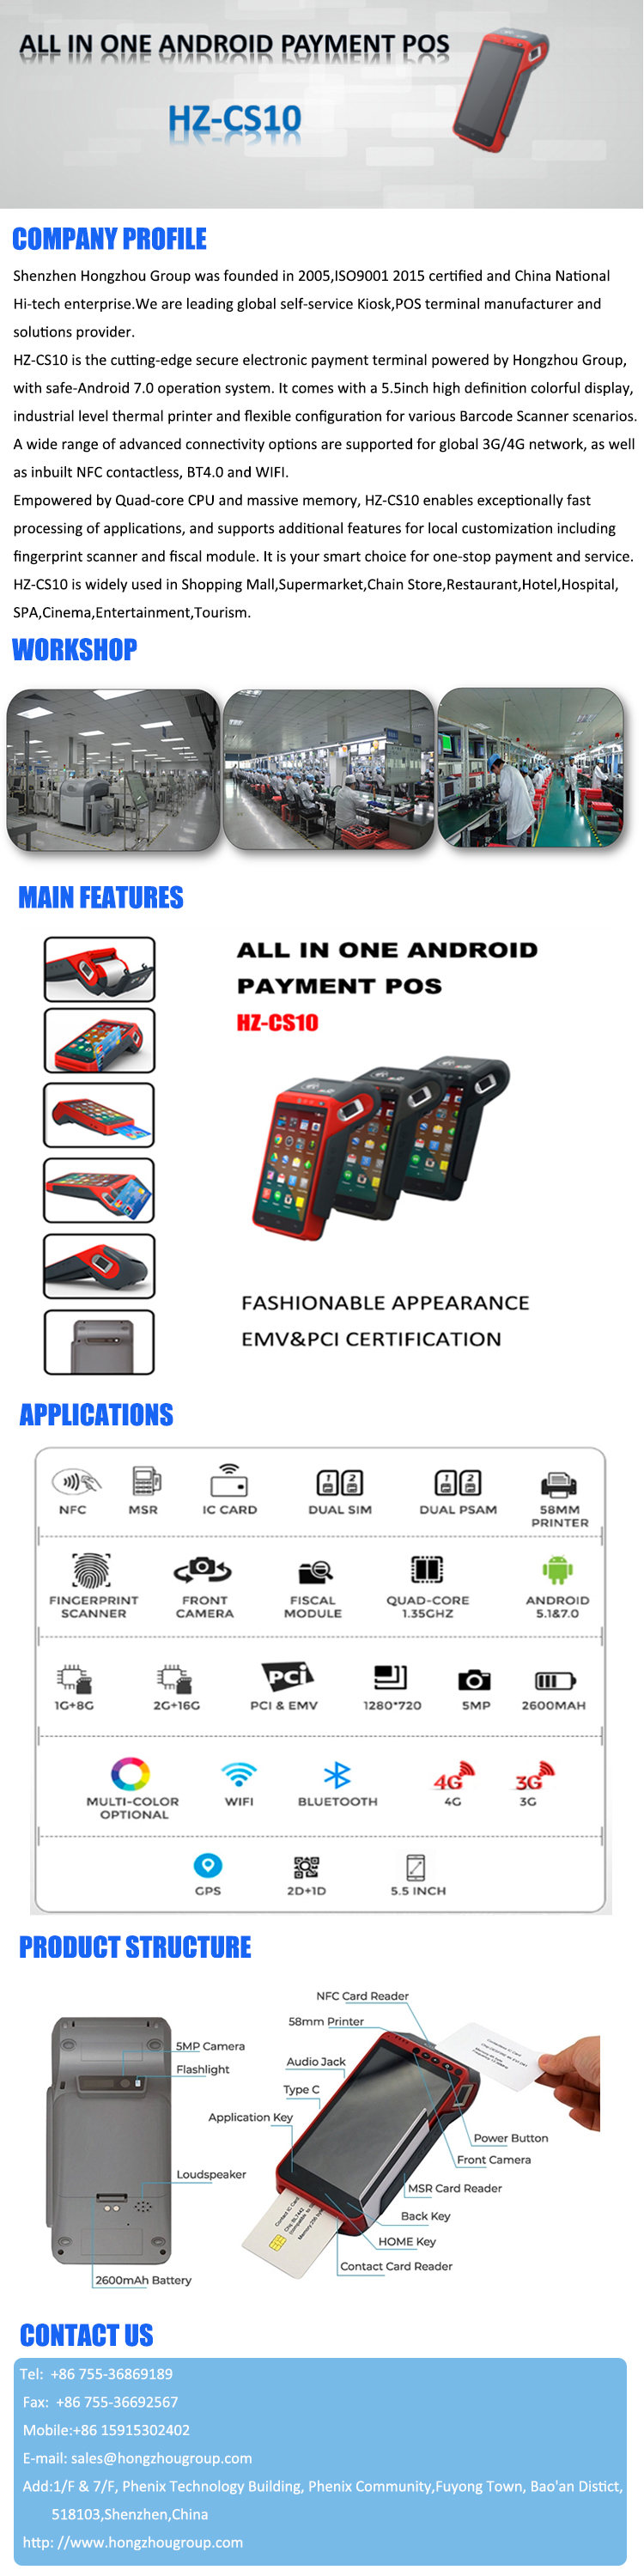 Android 7.0 Handheld Smart Payment POS With Optional Modules